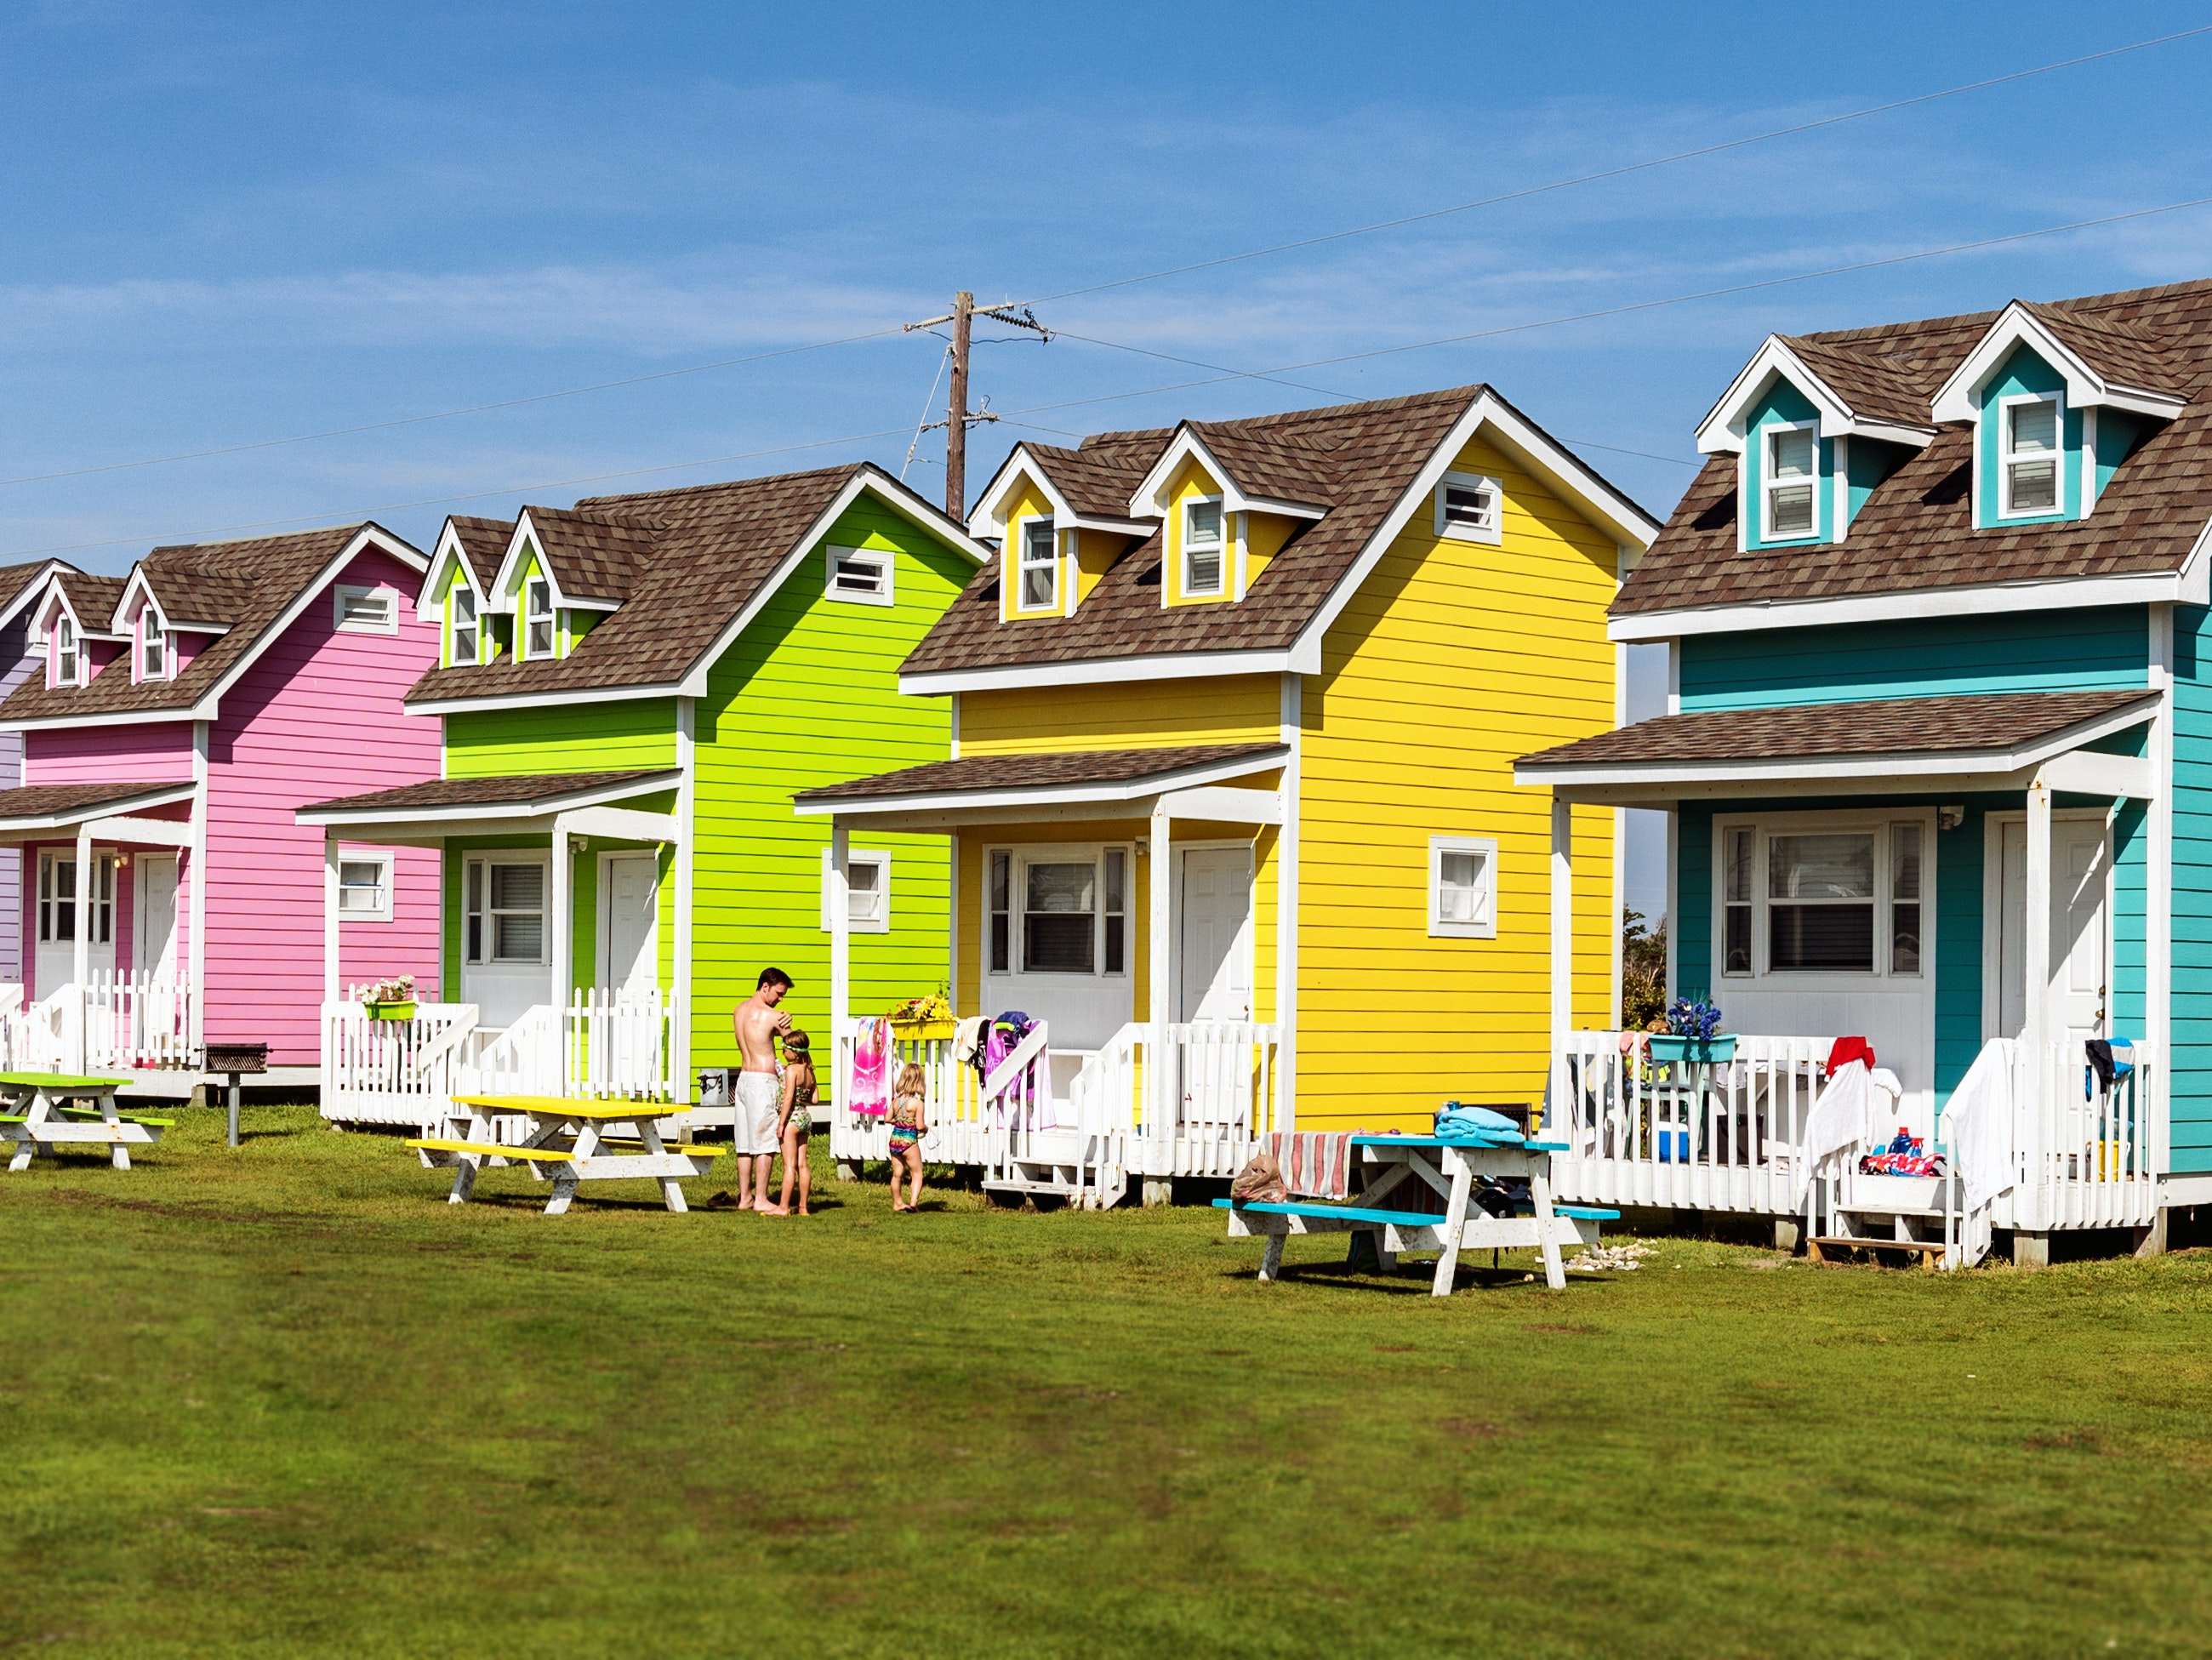 The Big Psychological Issues at Stake With Tiny Homes